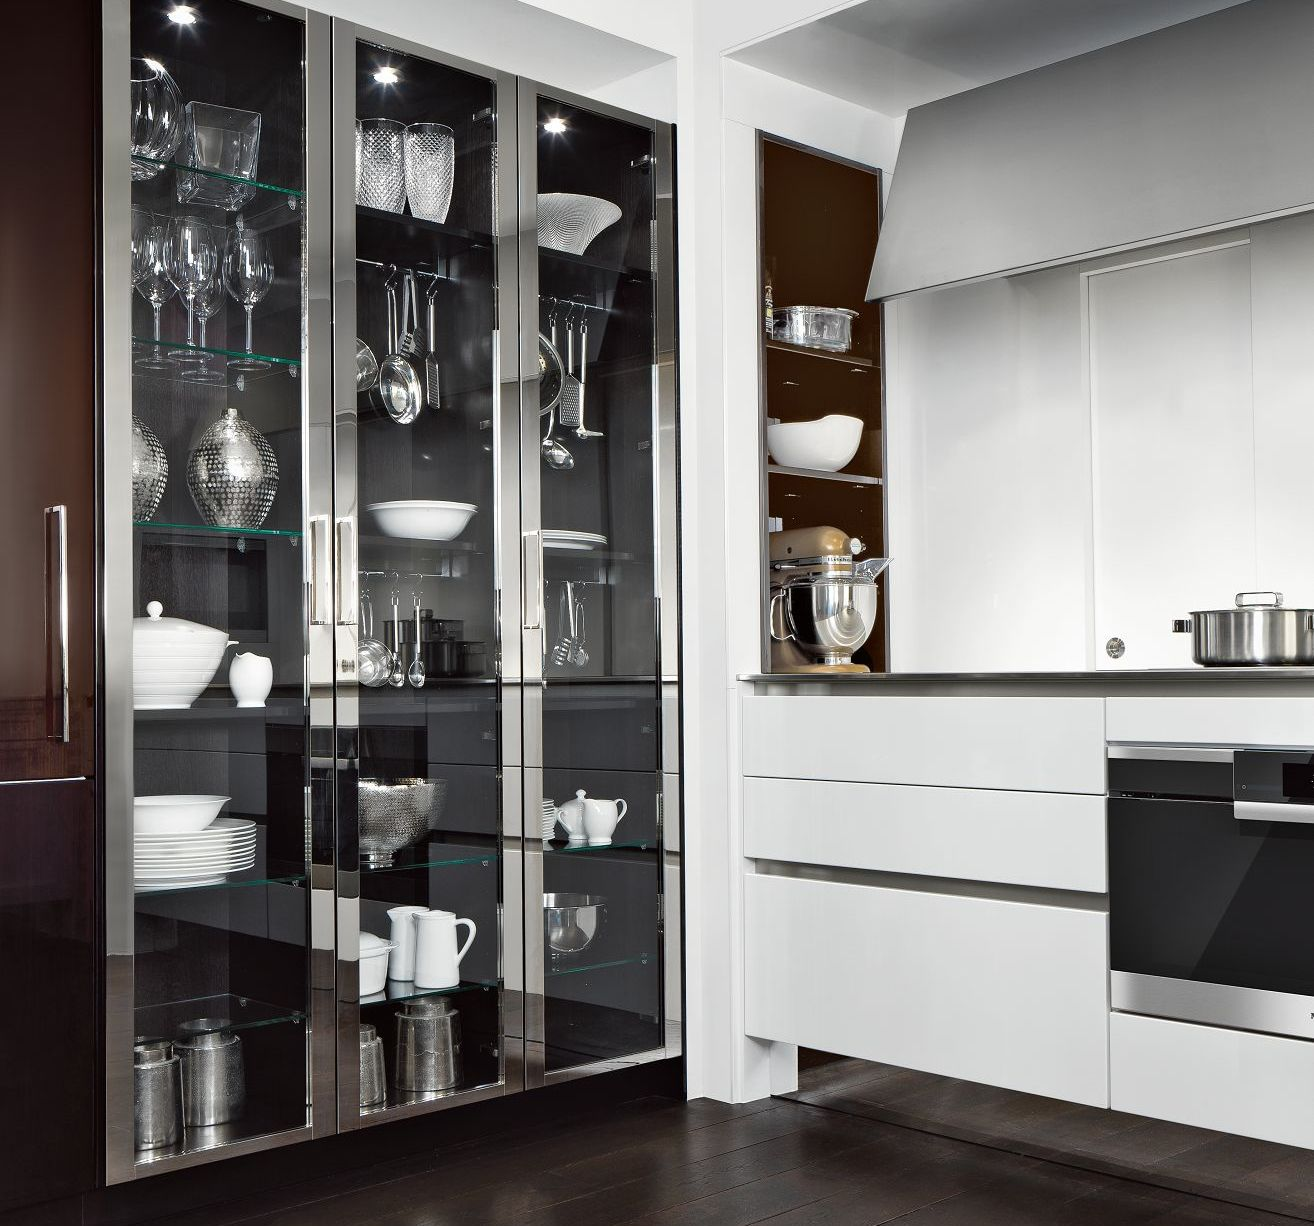 SieMatic Classic BeauxArts S2 ceiling-high glass display cabinets with metal frame in nickel gloss